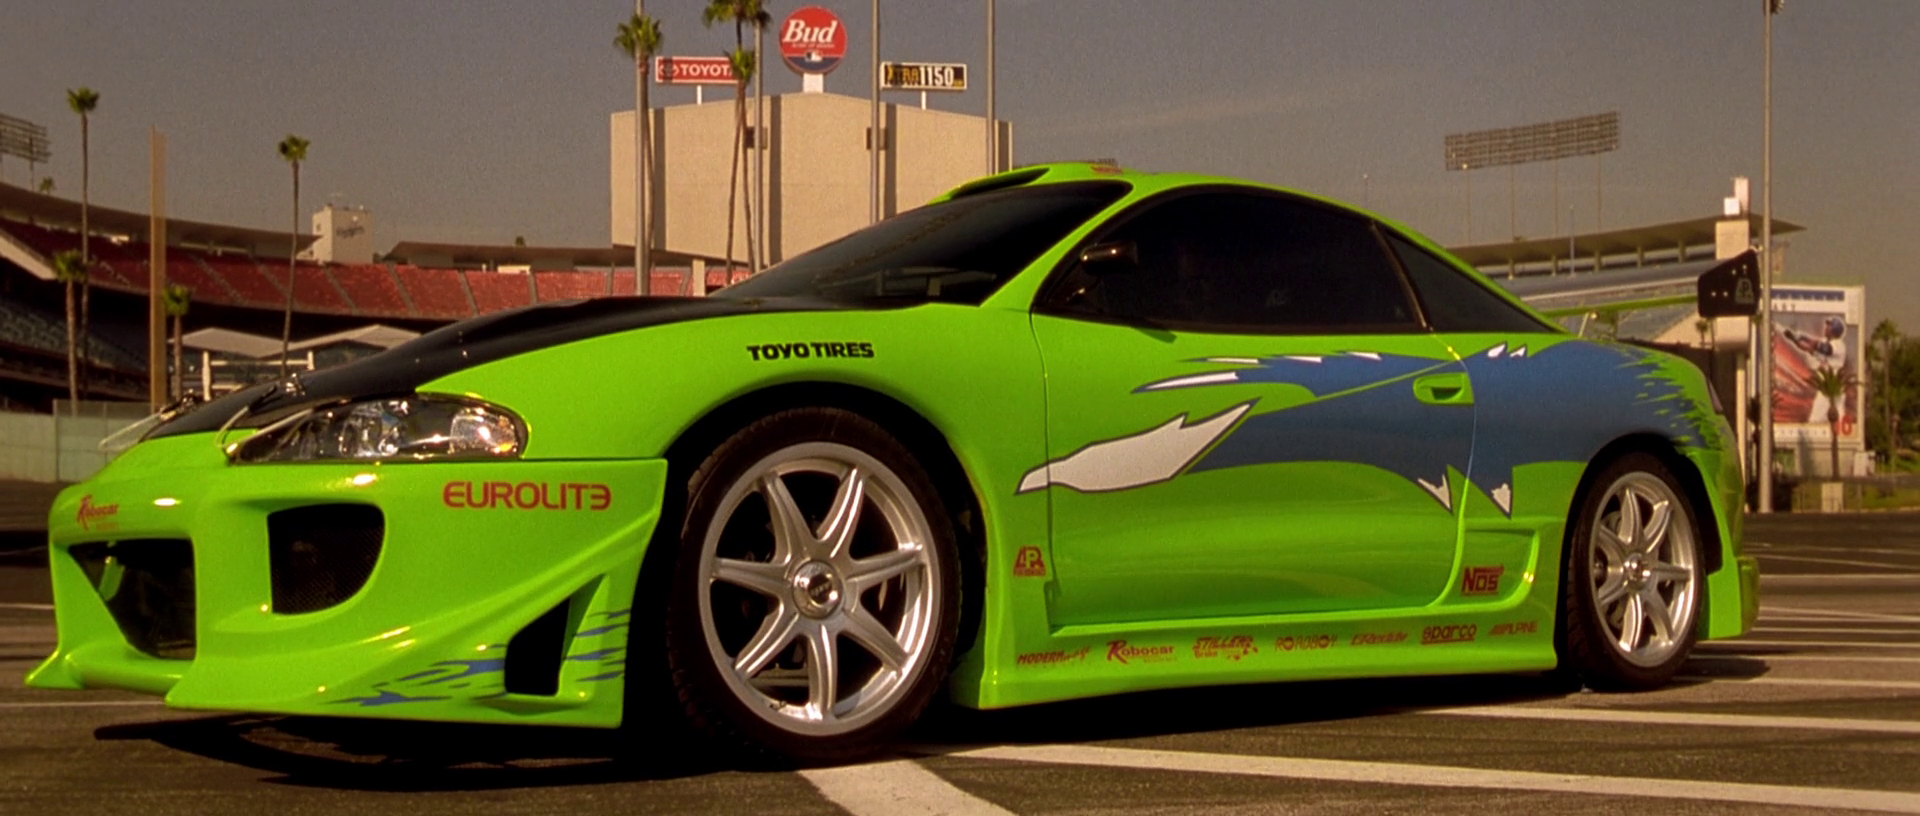 1995 Mitsubishi Eclipse | The Fast and the Furious Wiki | FANDOM ...